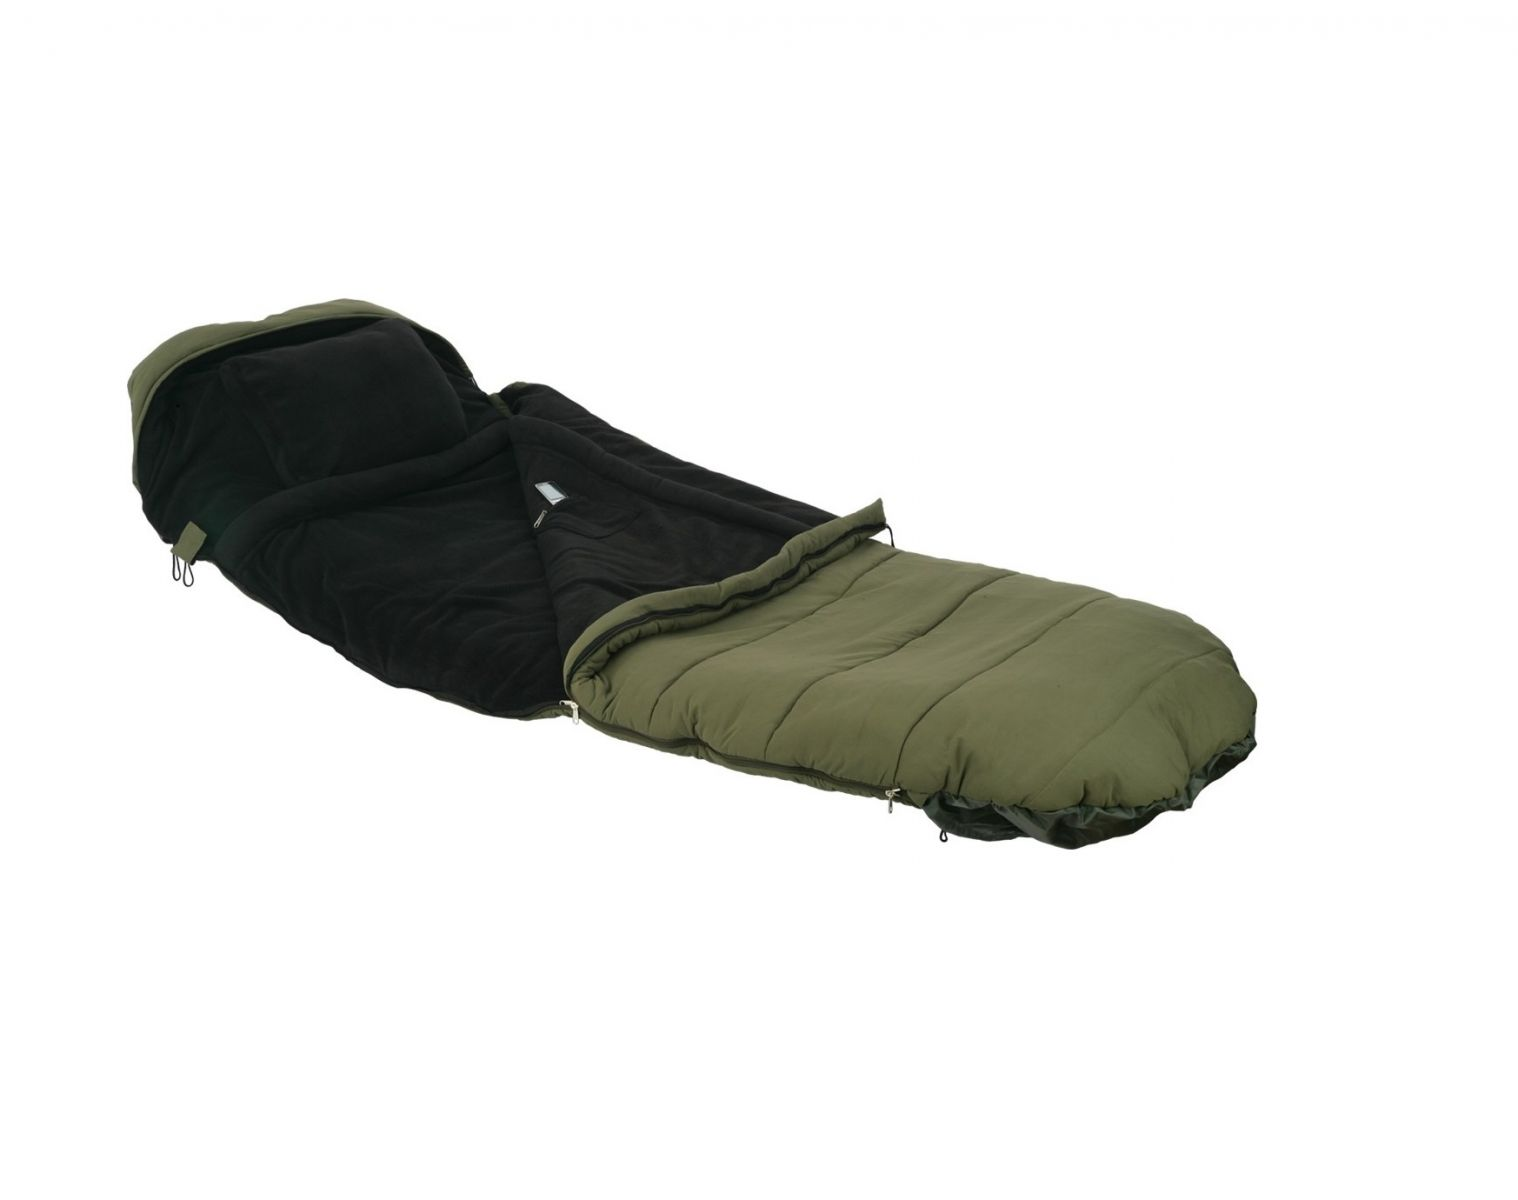 Spacák Extreme 5 Season Sleeping Bag